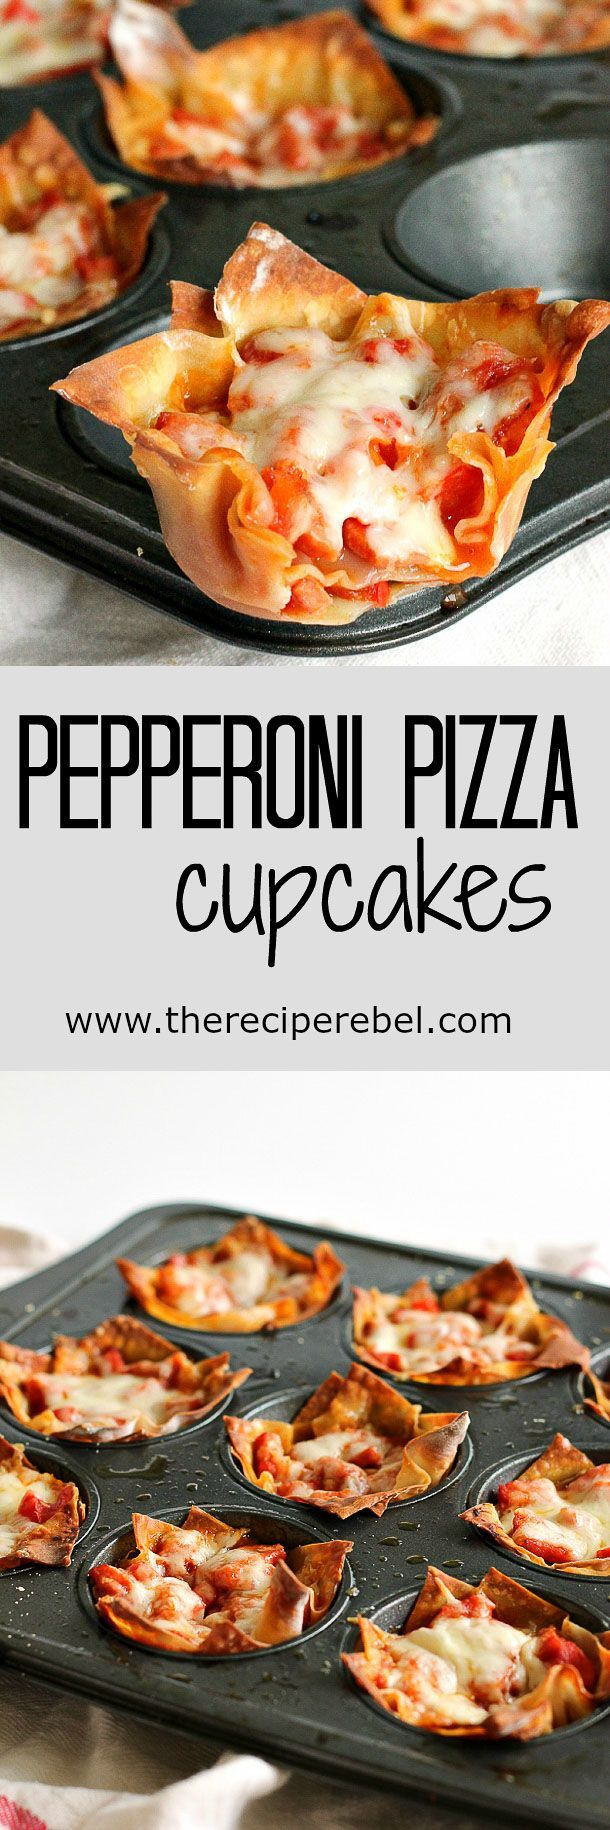 Pepperoni Pizza Cupcakes: pepperoni, cheese, and pizza sauce baked inside of crisp wonton wrappers: the ultimate handheld pizza! Only 4 main ingredients and 20 minutes! Perfect as an appetizer or a quick lunch.